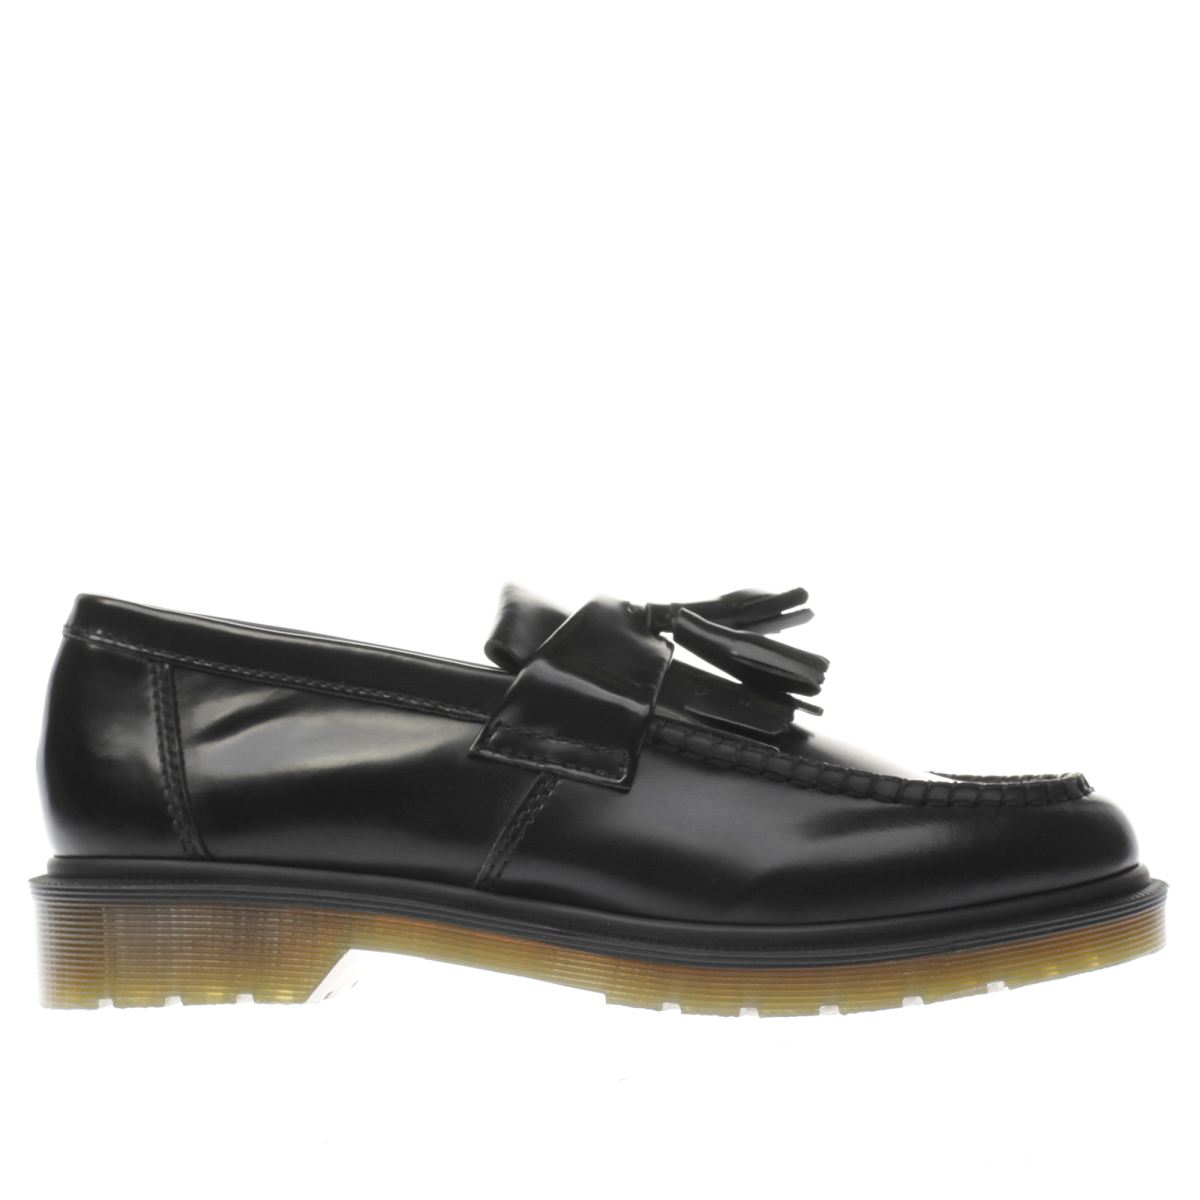 dr martens black adrian tassle shoes